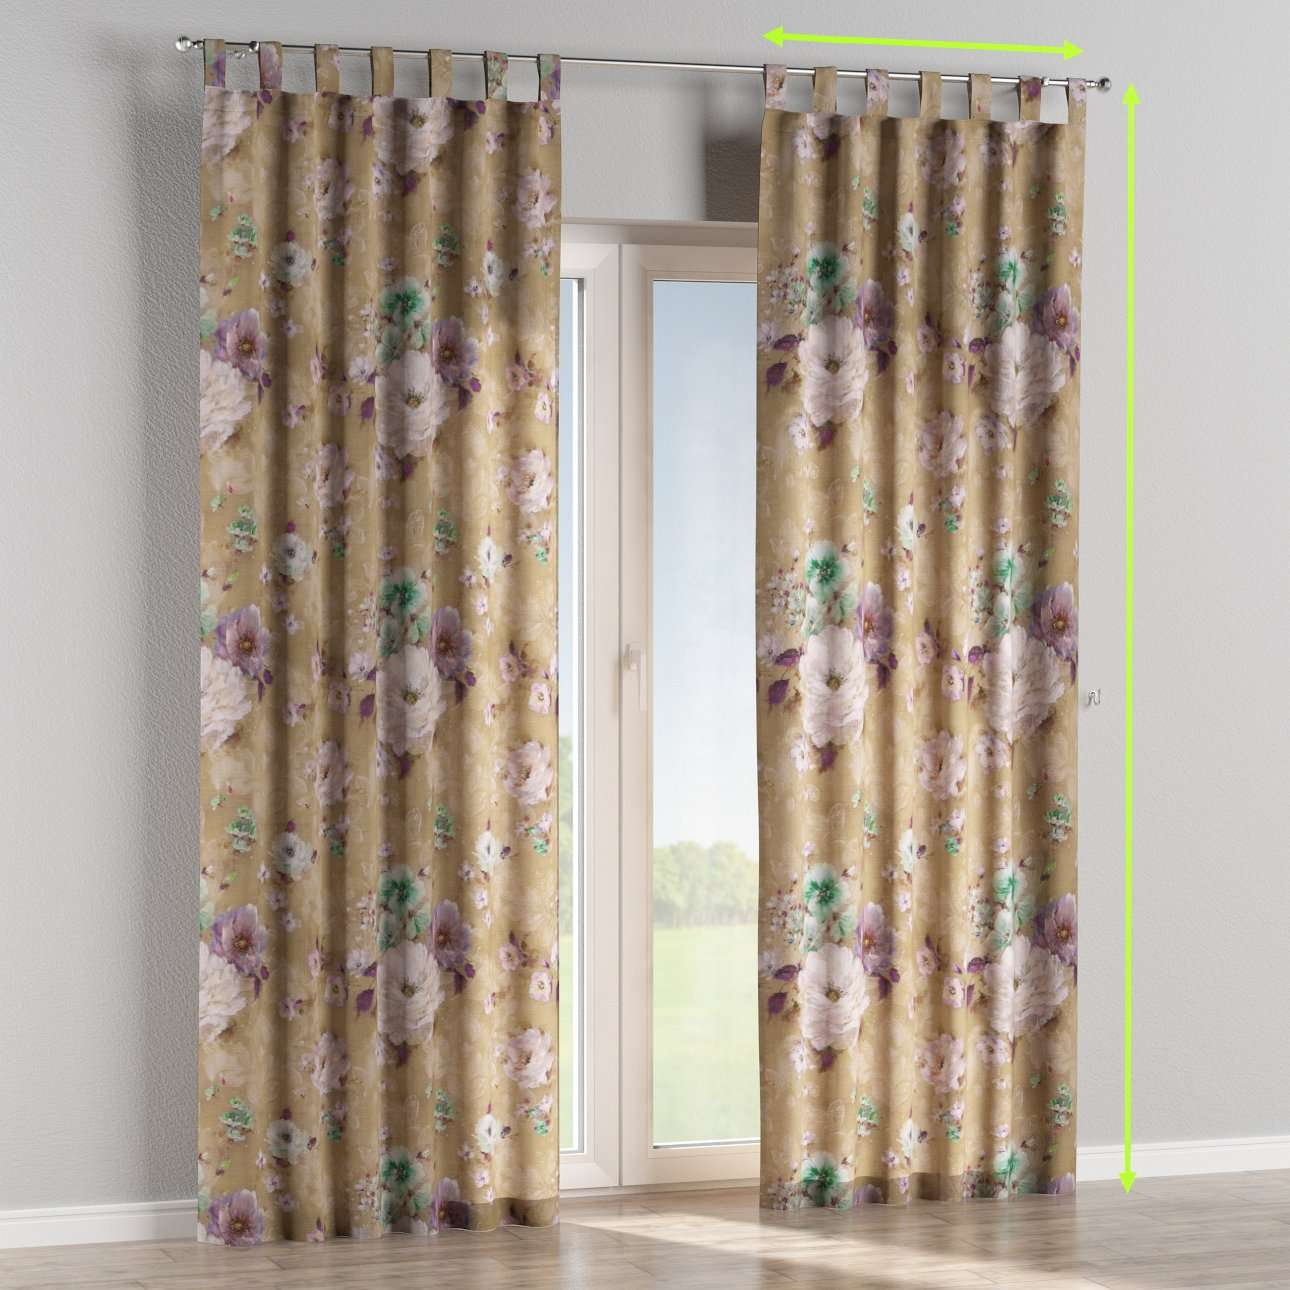 Tab top curtains in collection Monet, fabric: 137-82